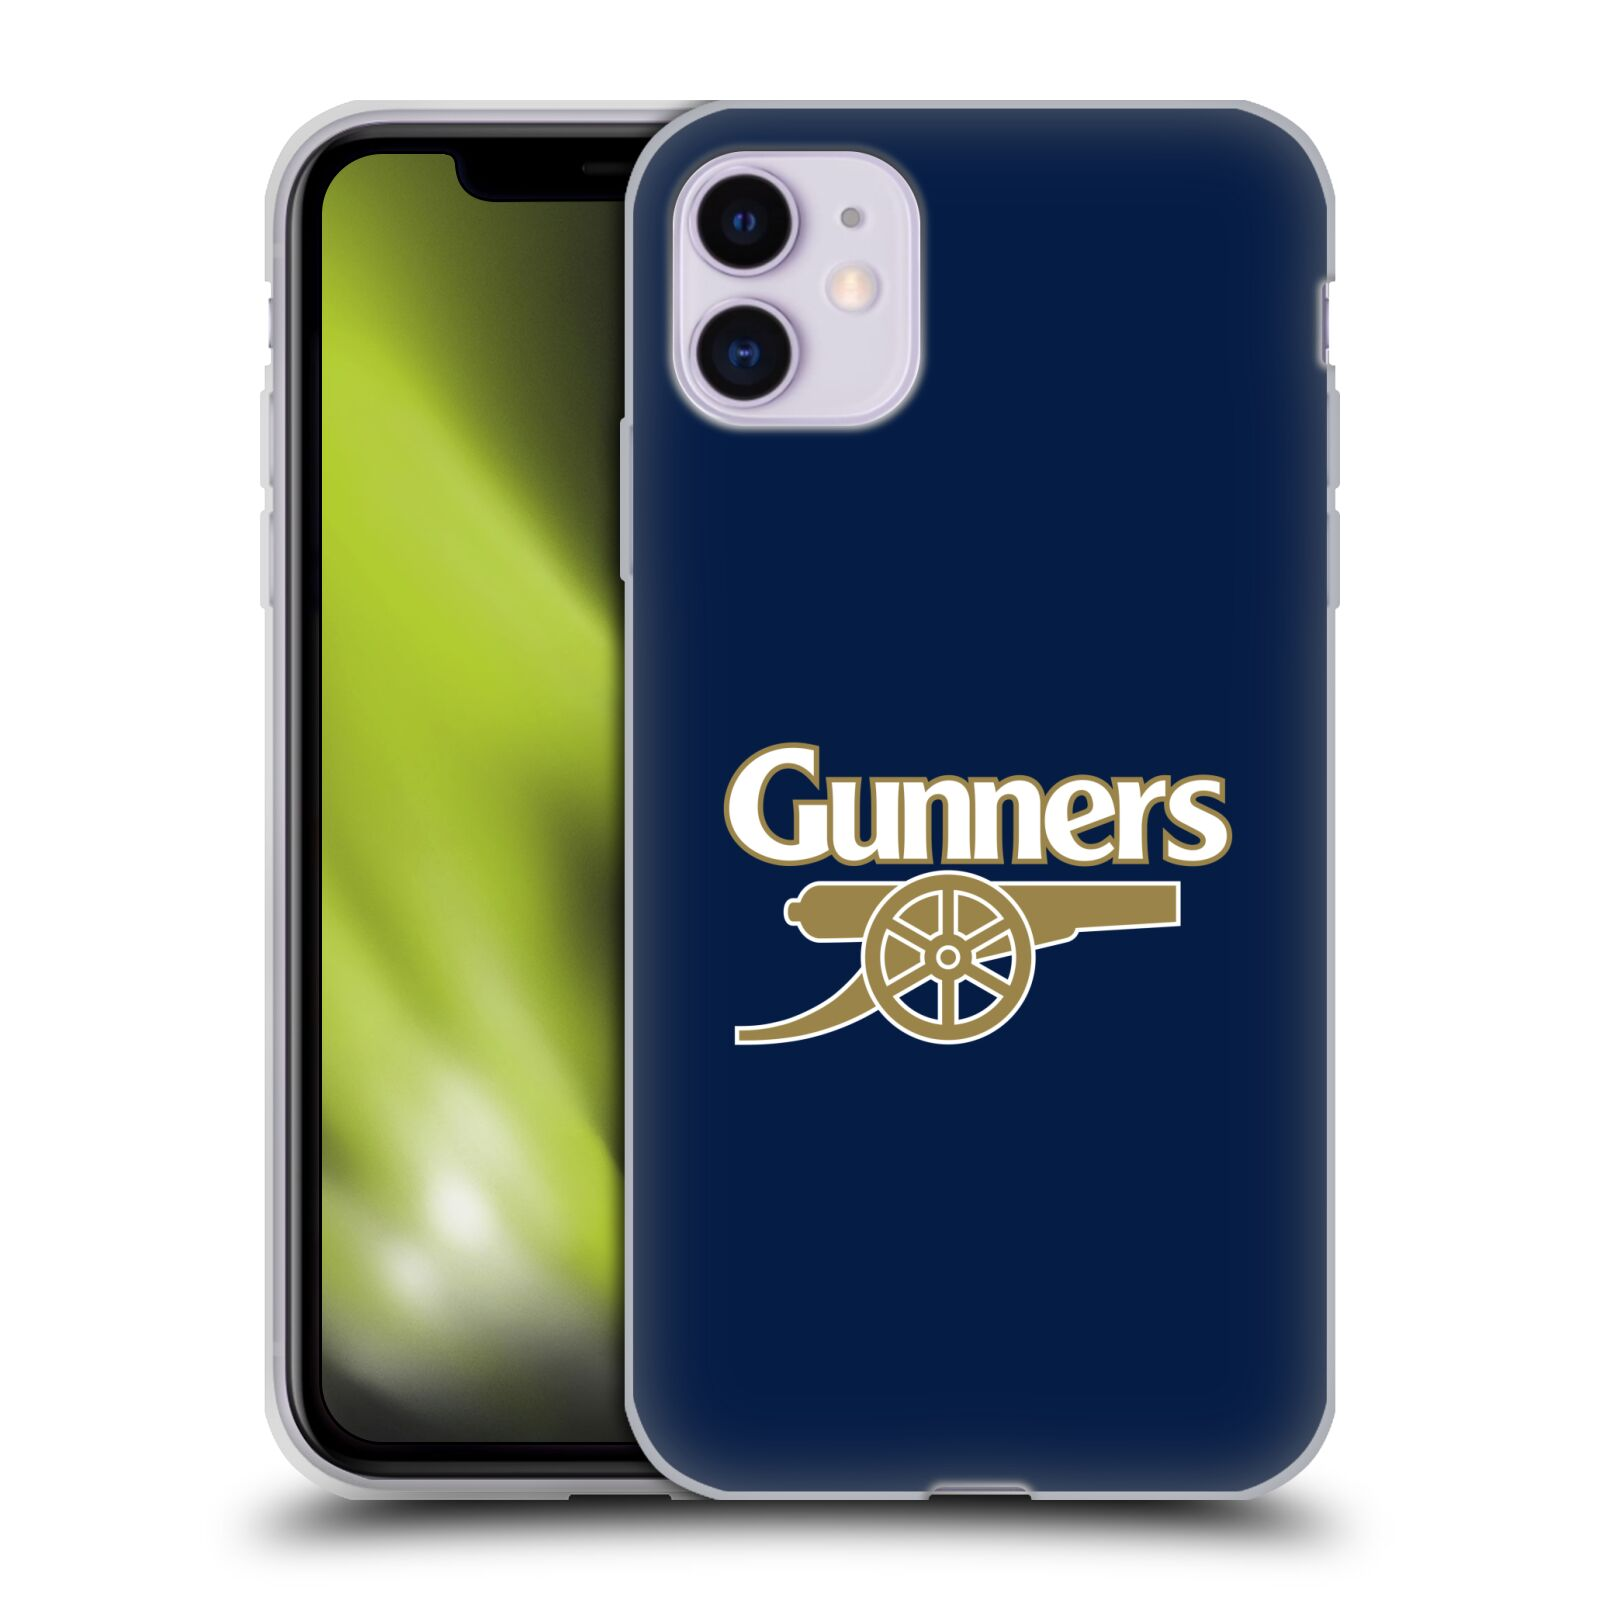 Silikonové pouzdro na mobil Apple iPhone 11 - Head Case - Arsenal FC - Gunners